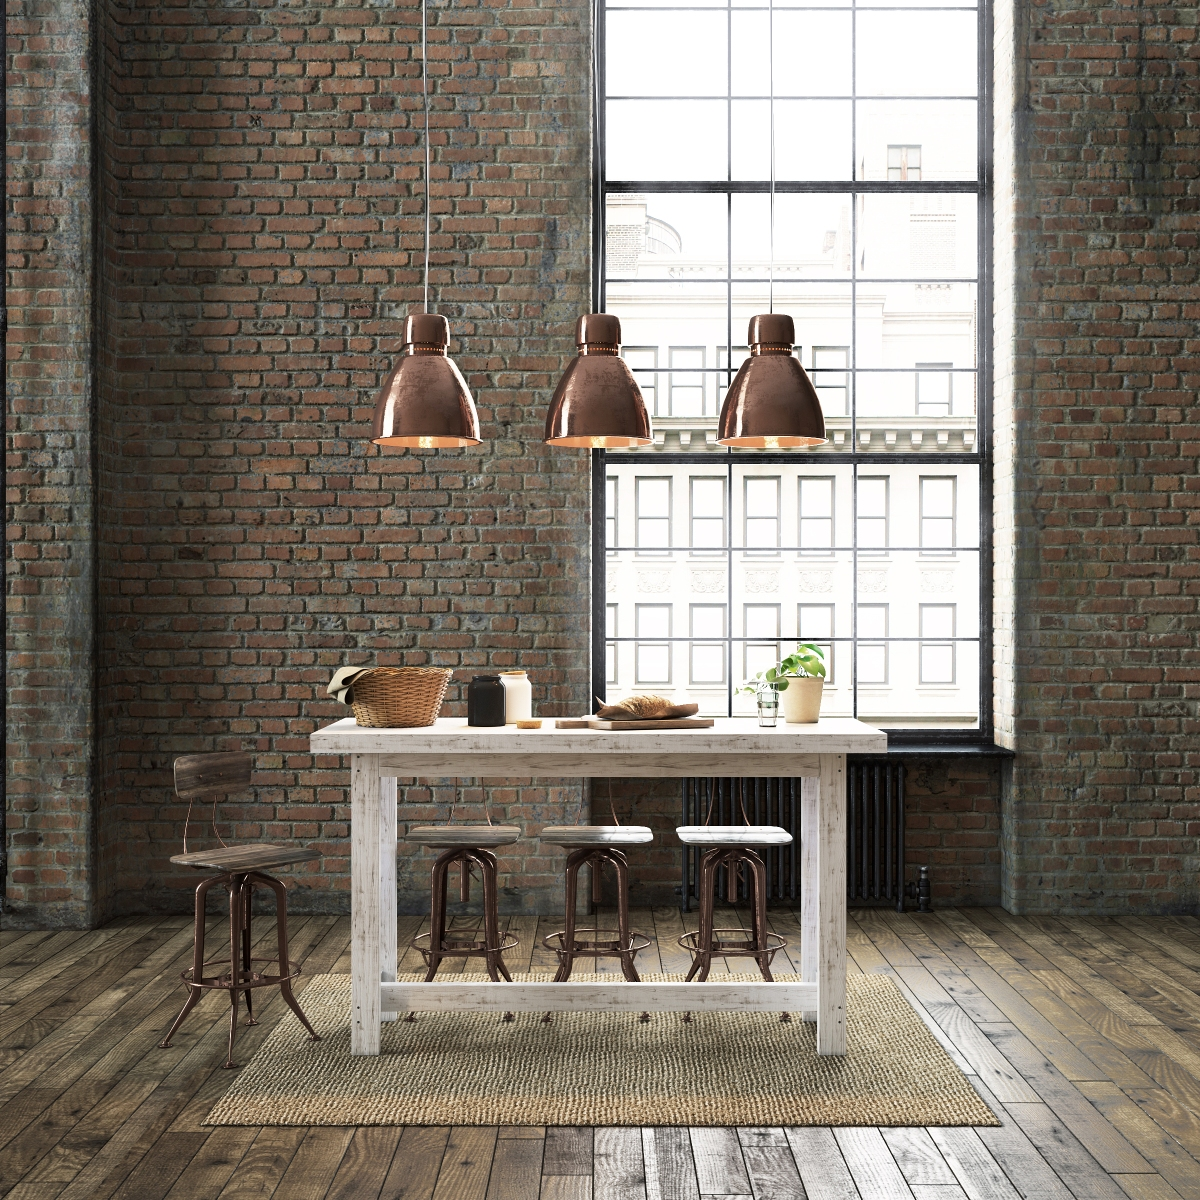 Recycled Timber + Copper = Retro Industrial Loft Style